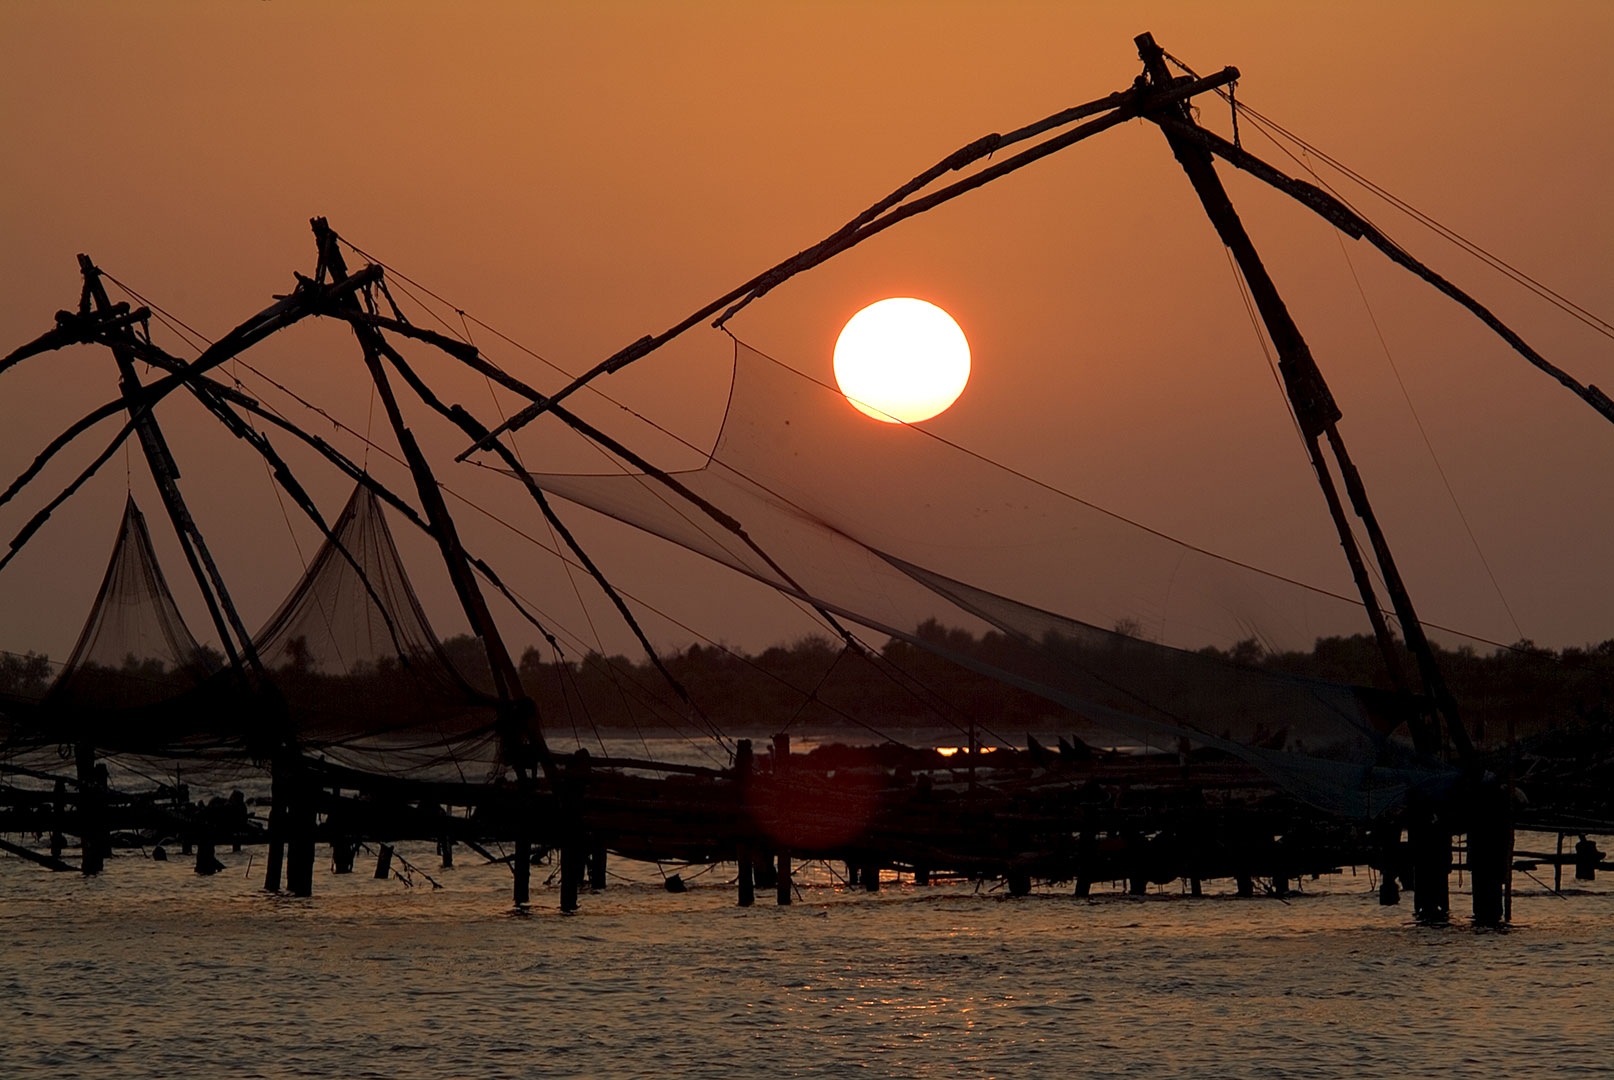 Fishing-Net-Cochin